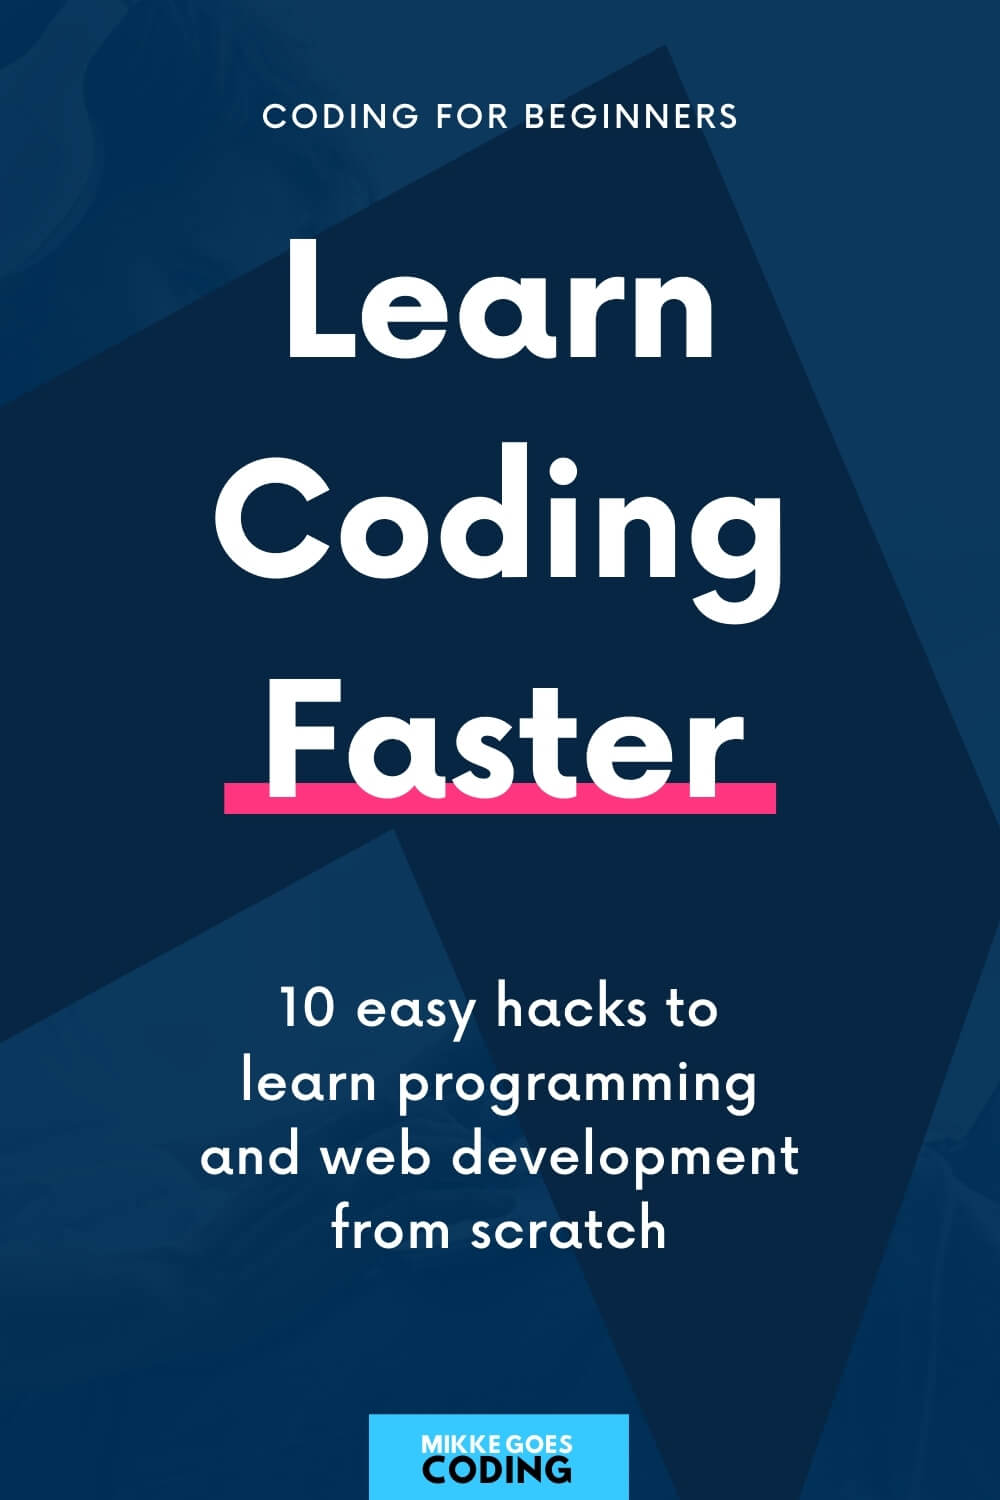 Learn to code faster - Practical tips for learning coding and programming